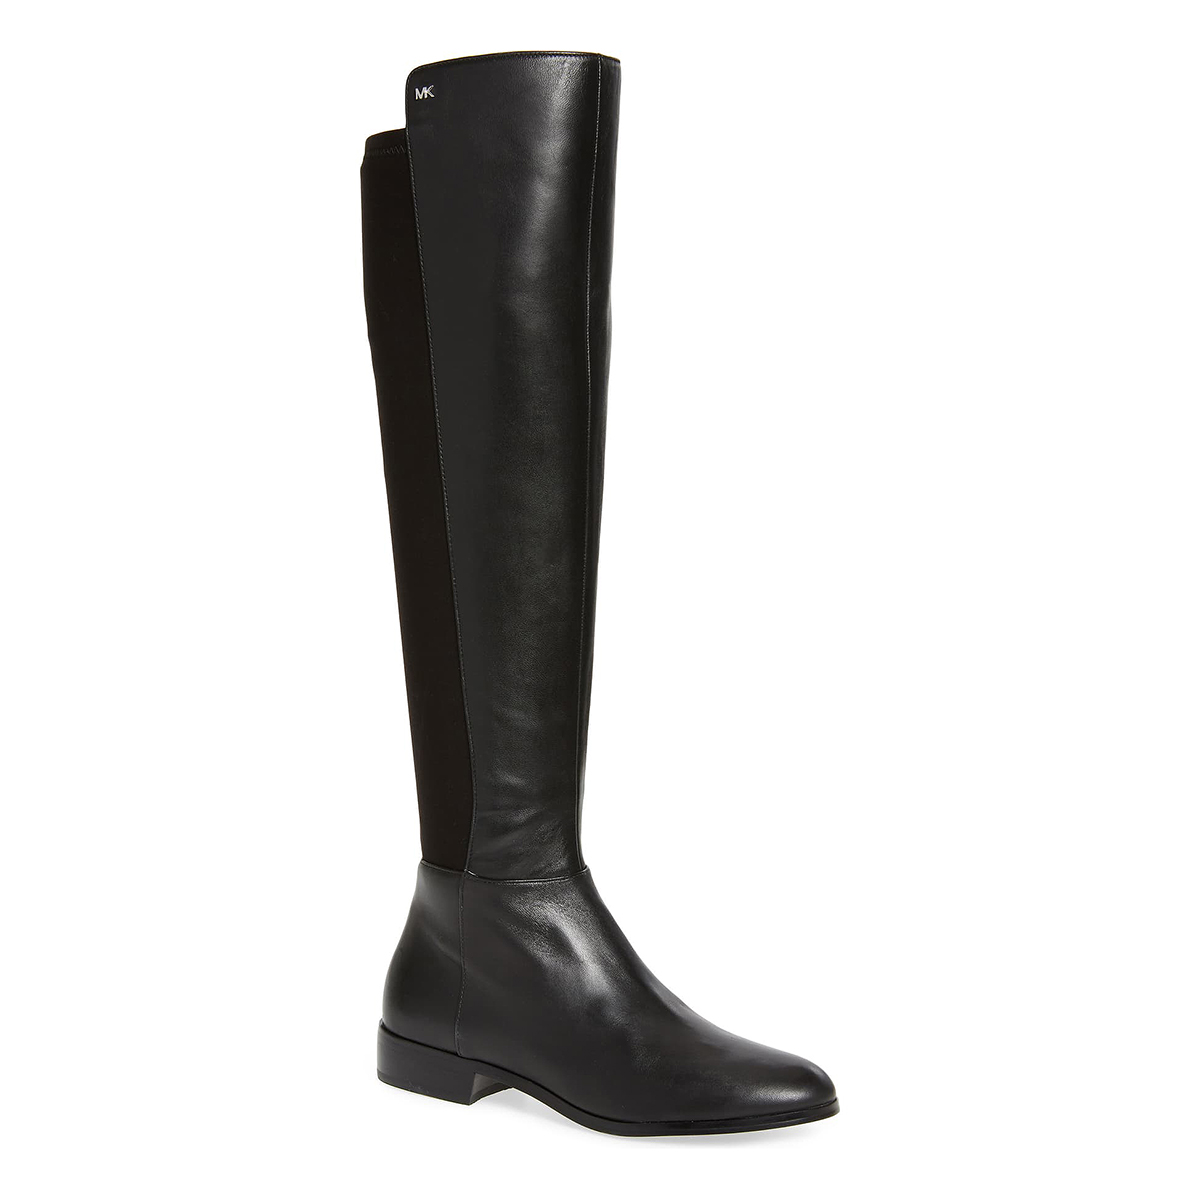 Hurry! These Outfit-Making Michael Kors Riding Boots Are 50% Off